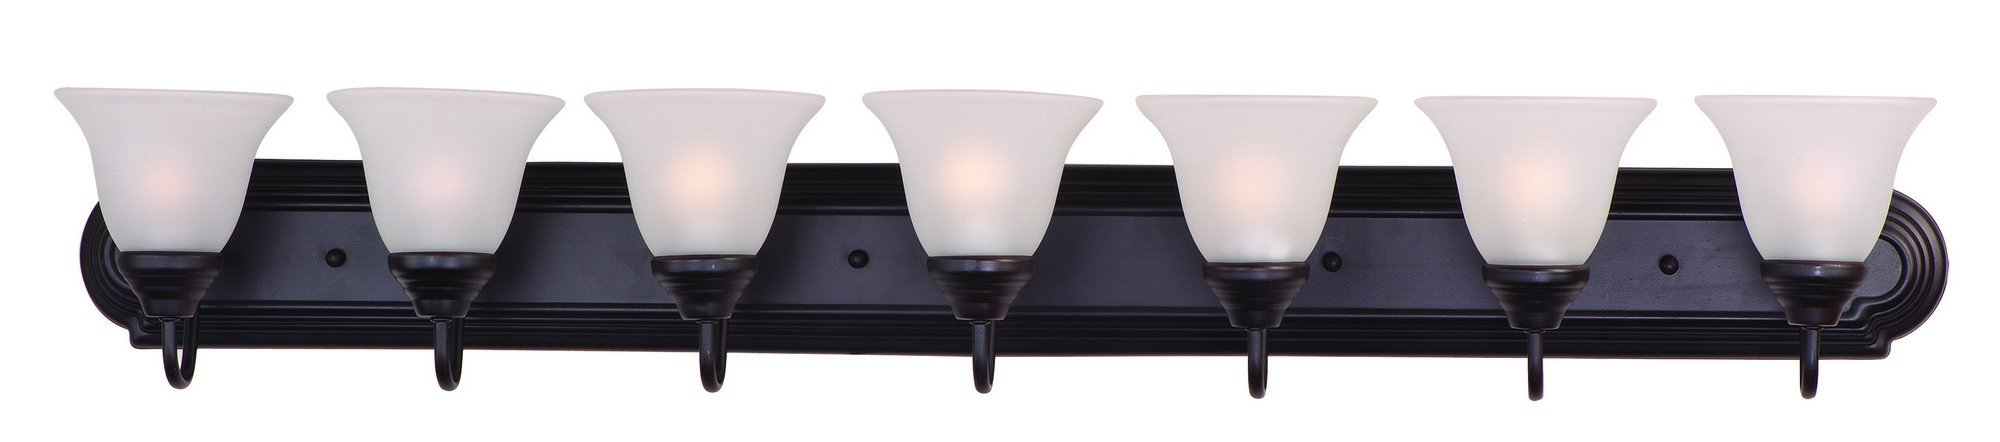 Maxim 8016FTOI Essentials 7-Light Bath Vanity, Oil Rubbed Bronze Finish, Frosted Glass, MB Incandescent Incandescent Bulb , 60W Max., Dry Safety Rating, Standard Dimmable, Opal Glass Shade Material, Rated Lumens